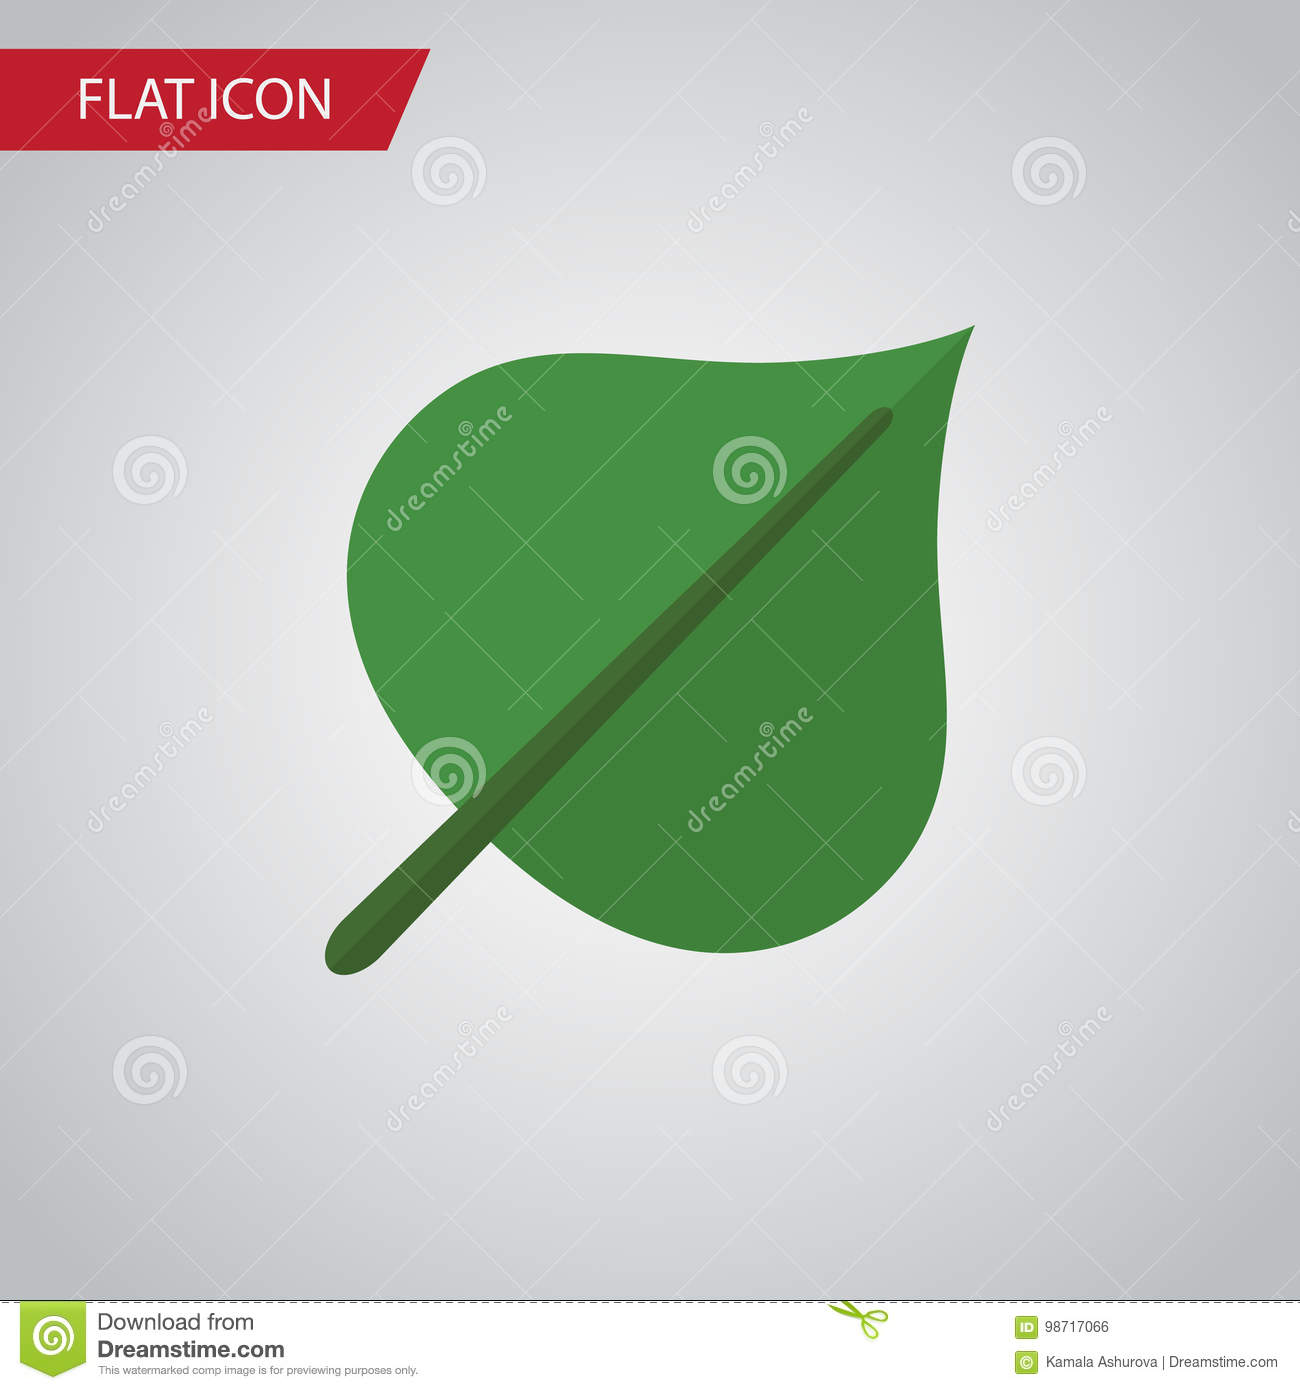 Foliage Flat Icon. Hickory Vector Element Can Be Used For Hickory, Foliage, Leaf Design Concept.